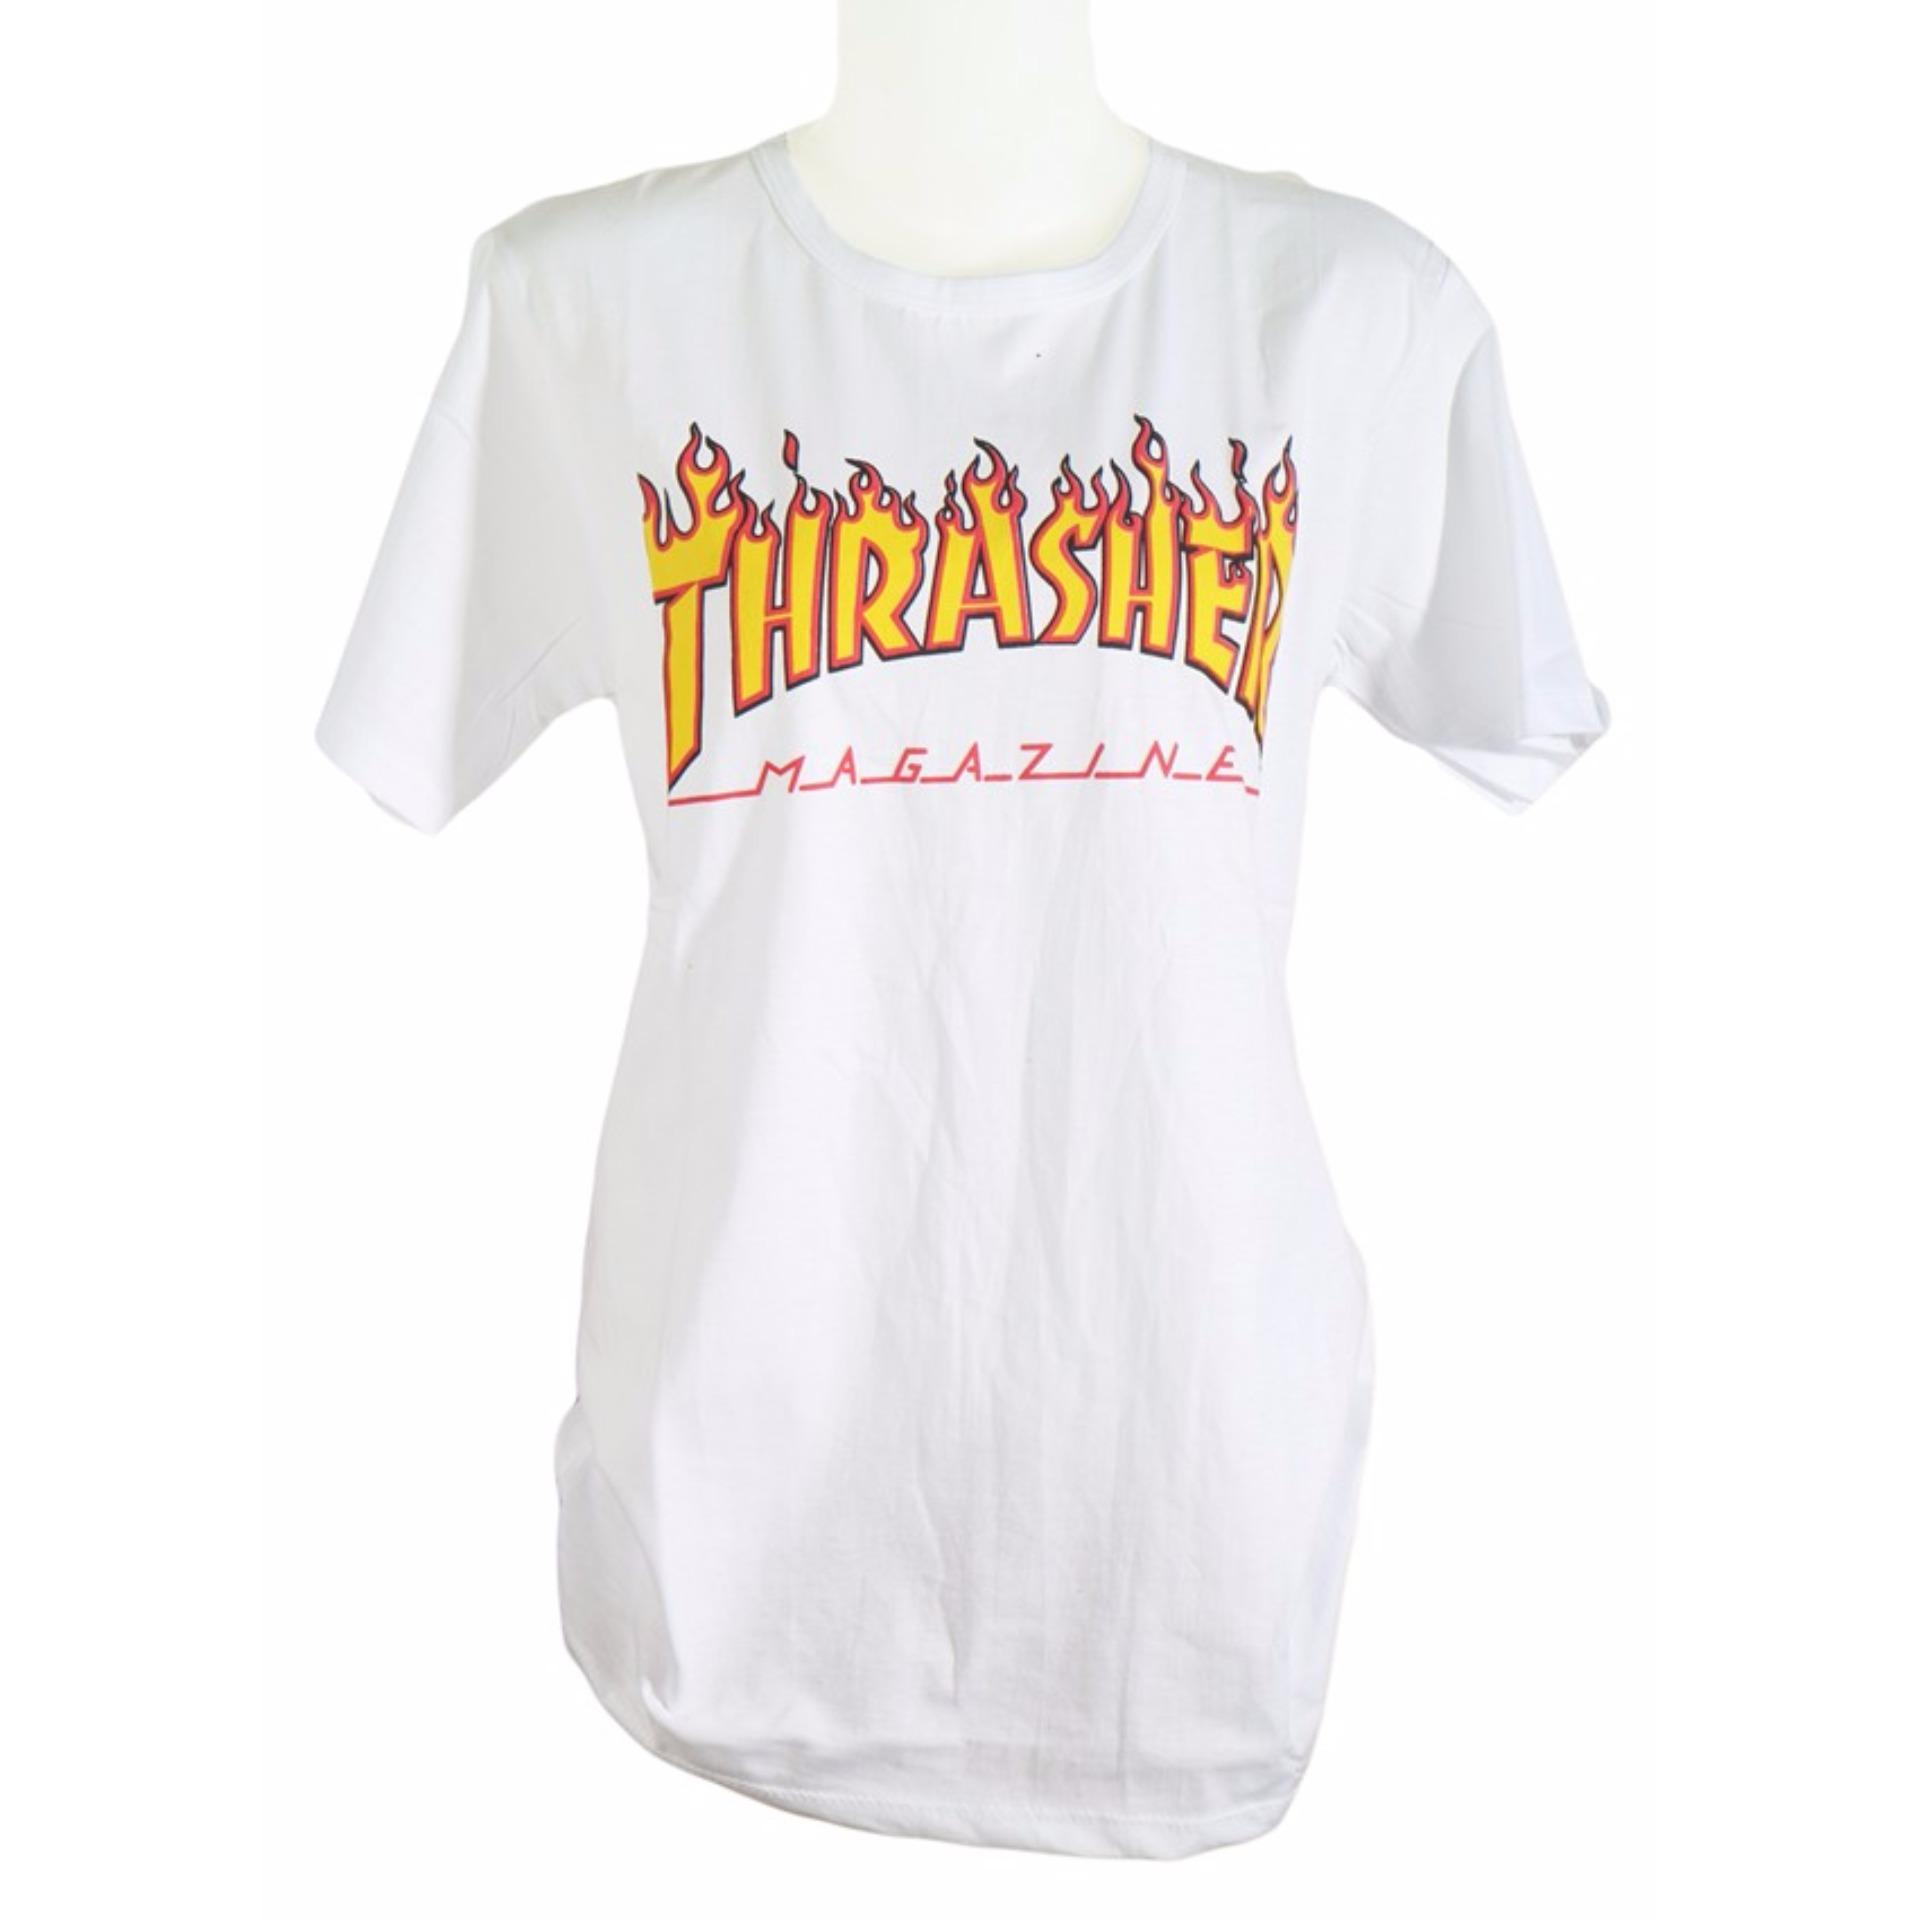 Flash Sale Vanwin - Kaos Cewek / Tumblr Tee / T-Shirt Wanita Fire Trasher